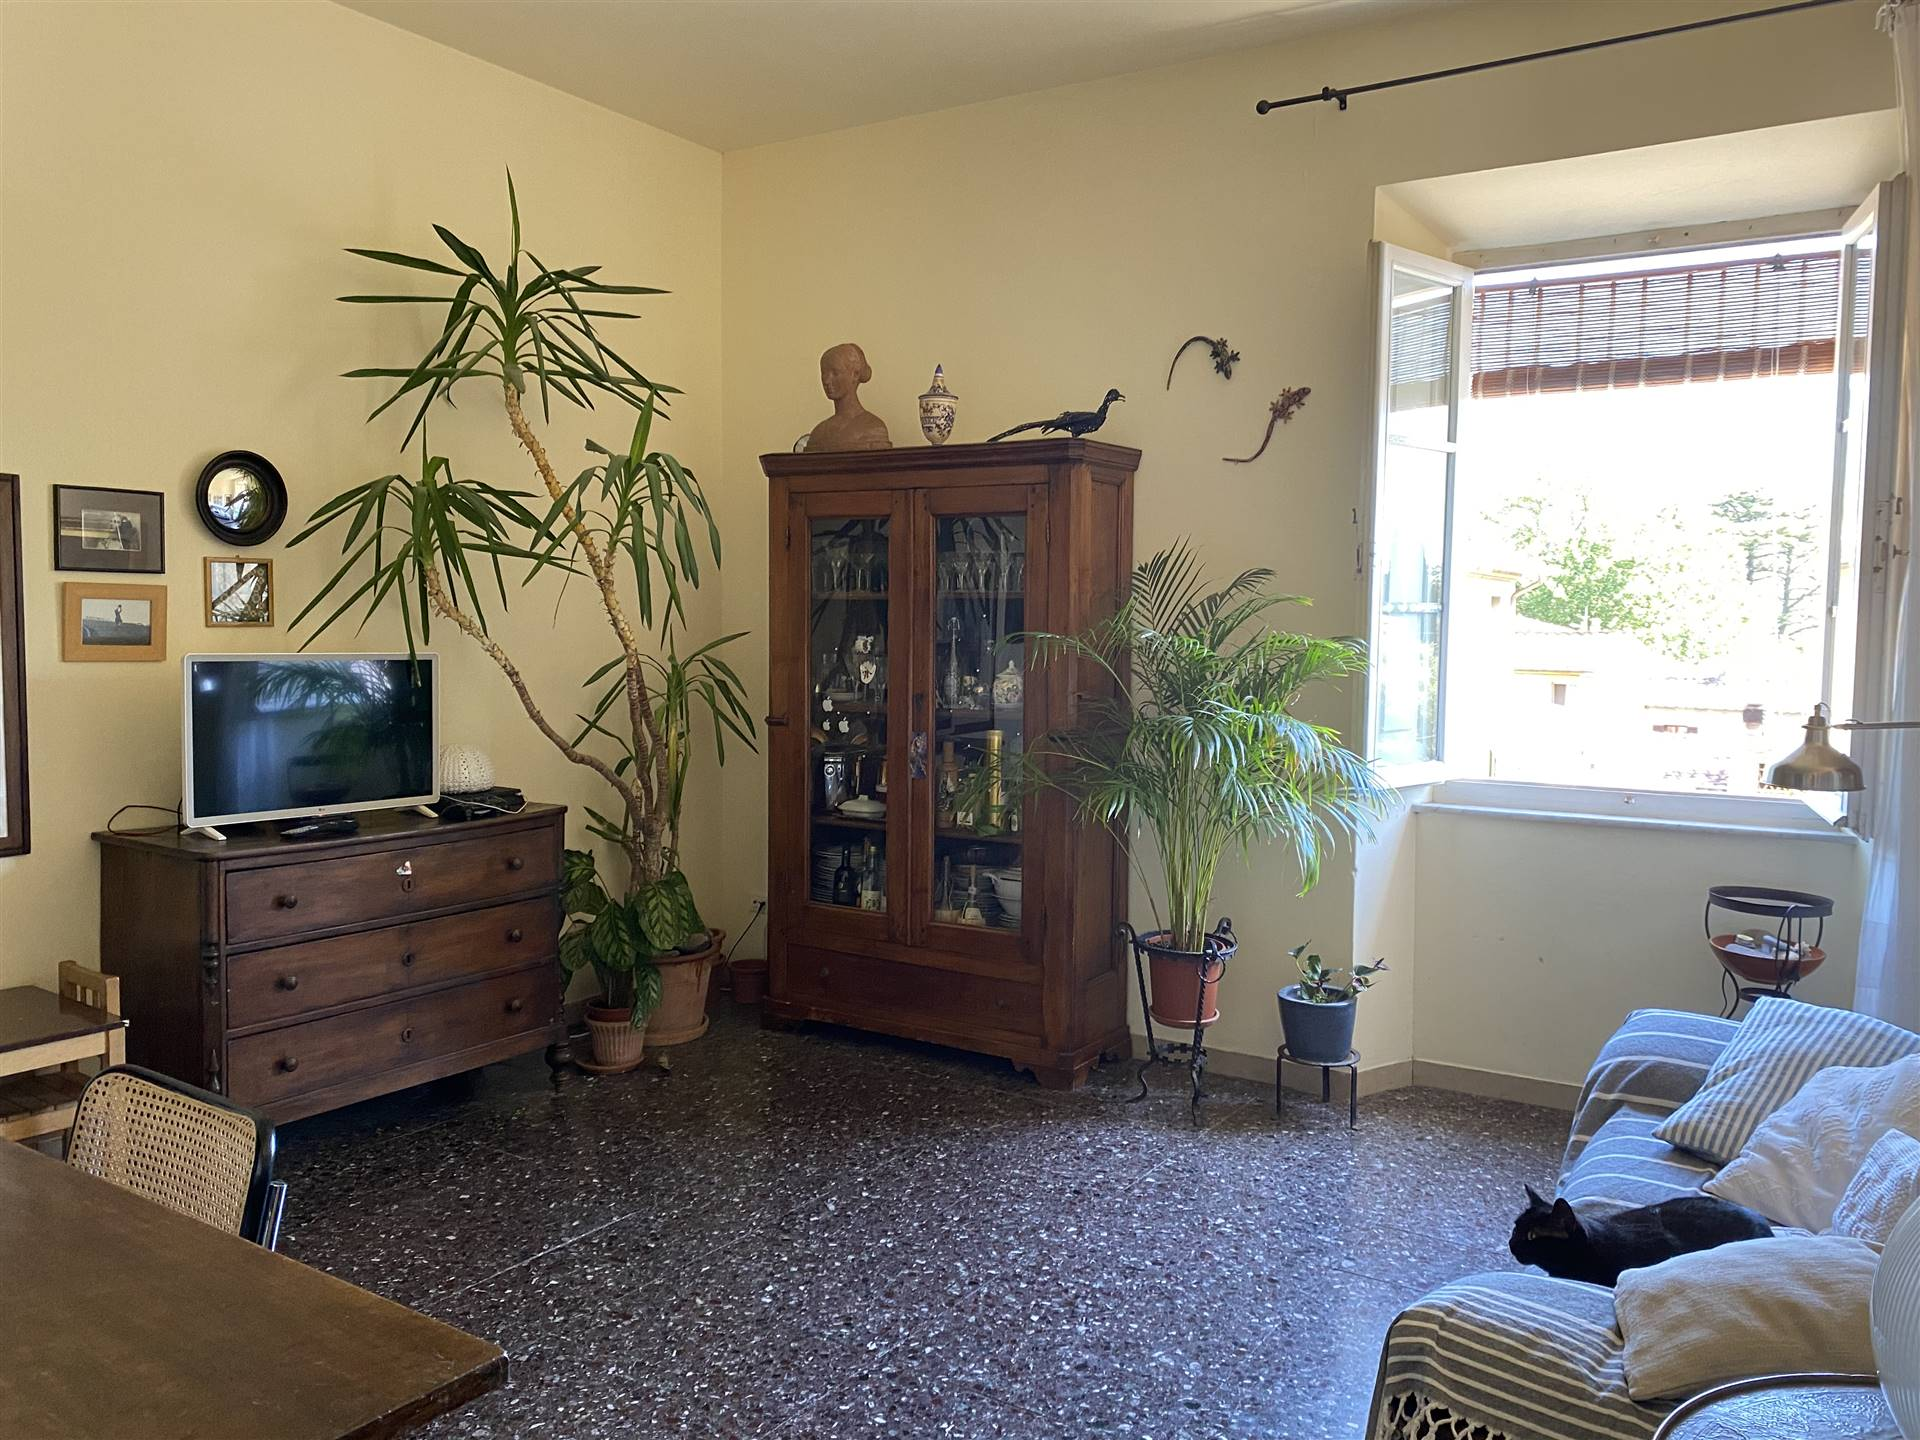 CASTEL MAGGIORE, CALCI, Apartment for sale of 100 Sq. mt., Good condition, Heating Individual heating system, Energetic class: G, placed at 2°,